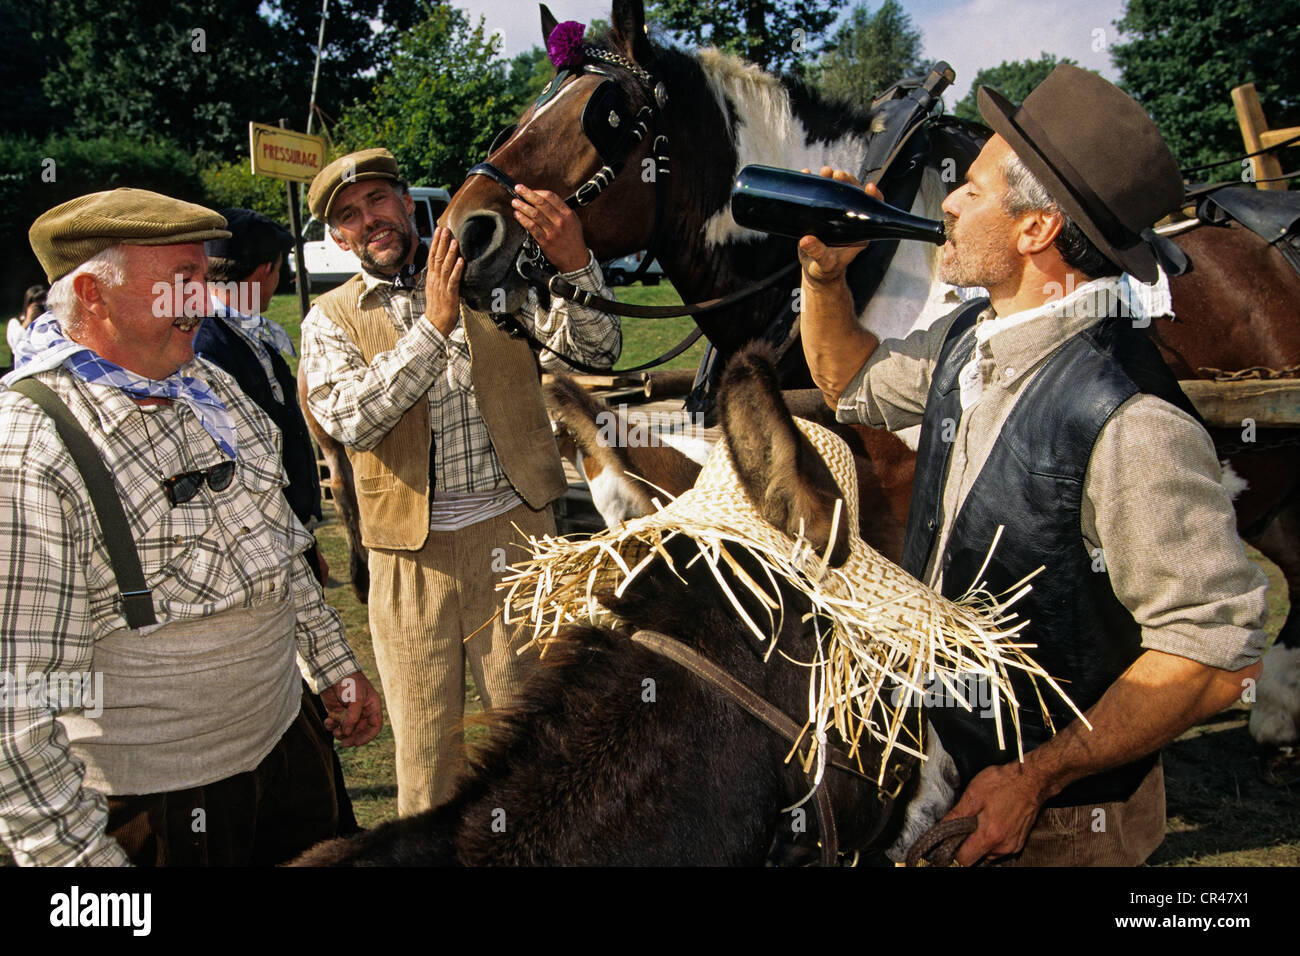 France, Marne, Pouillon, wine festival recovery with costumed - Stock Image